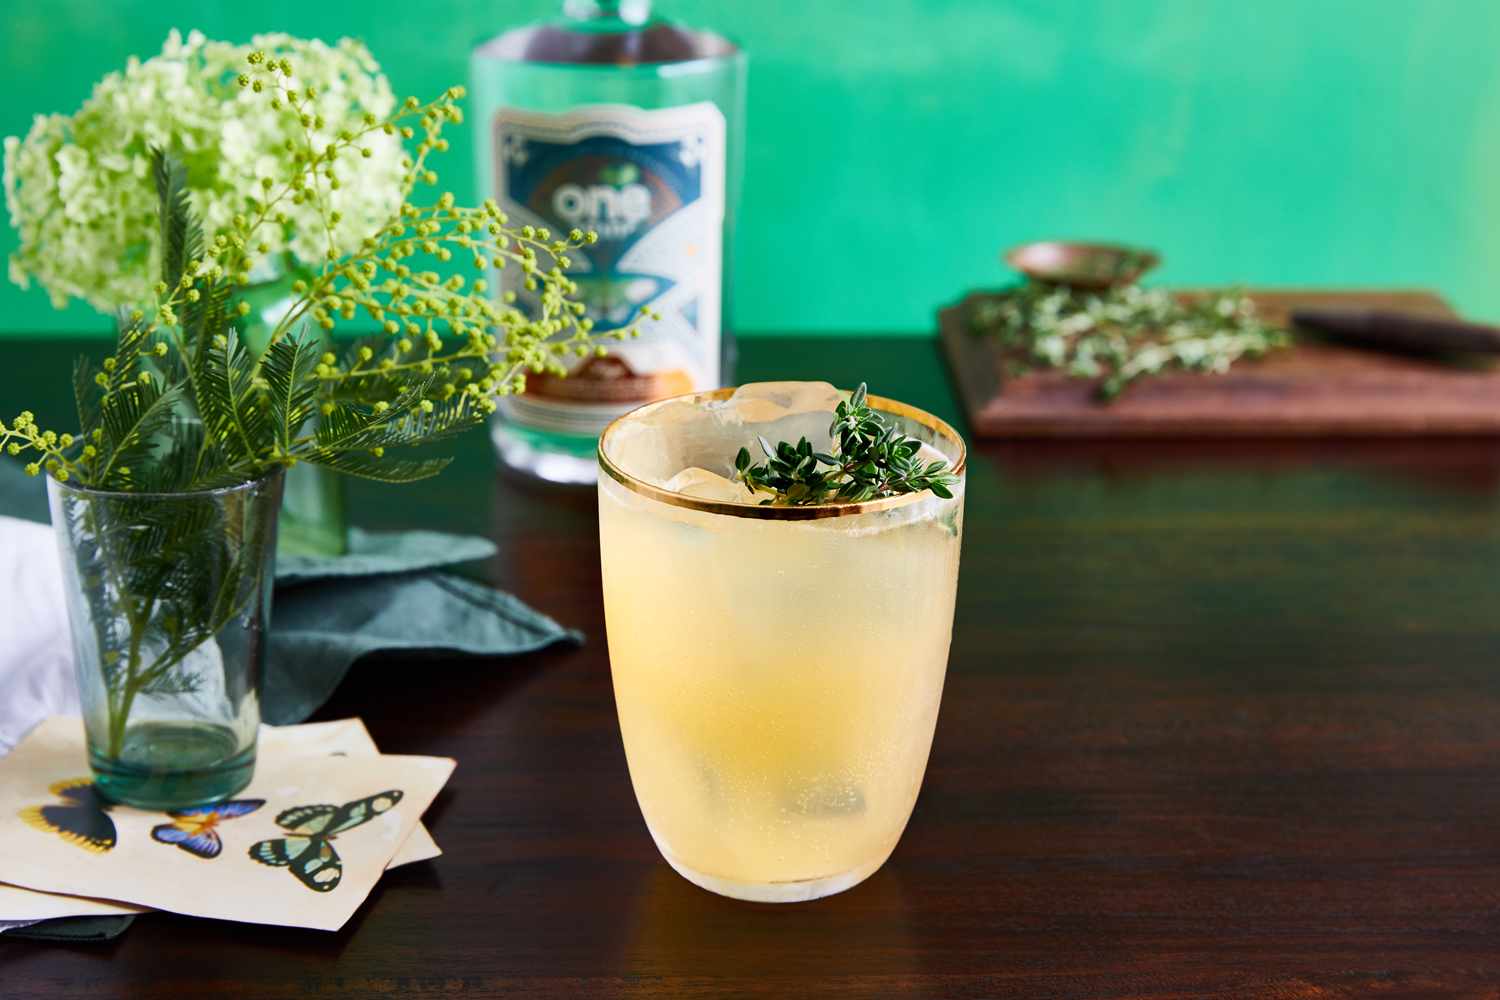 Chin Chin, It's Definitely Time For One Gin!